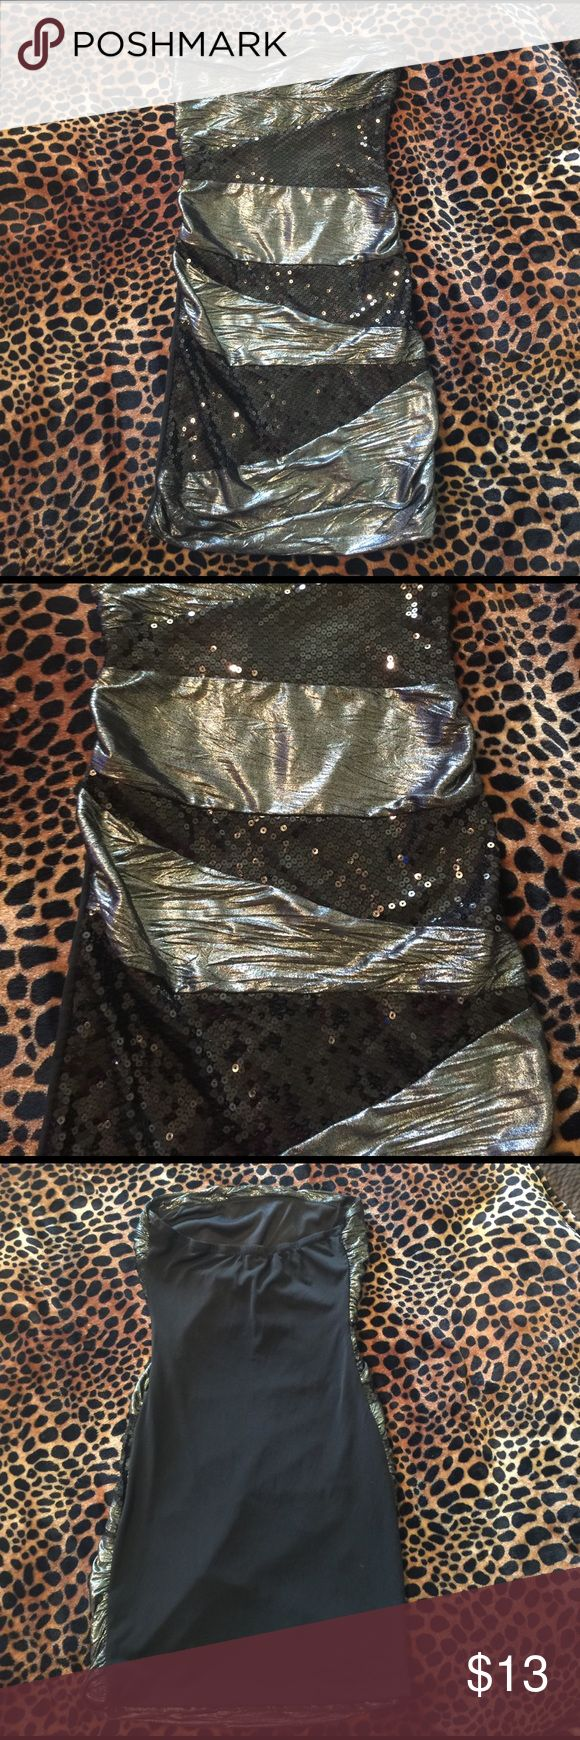 Black and silver sequin party dress Very similar to Bebe brand. Short, strapless, silver and black sequined stretch Vegas party dress beb Dresses Mini